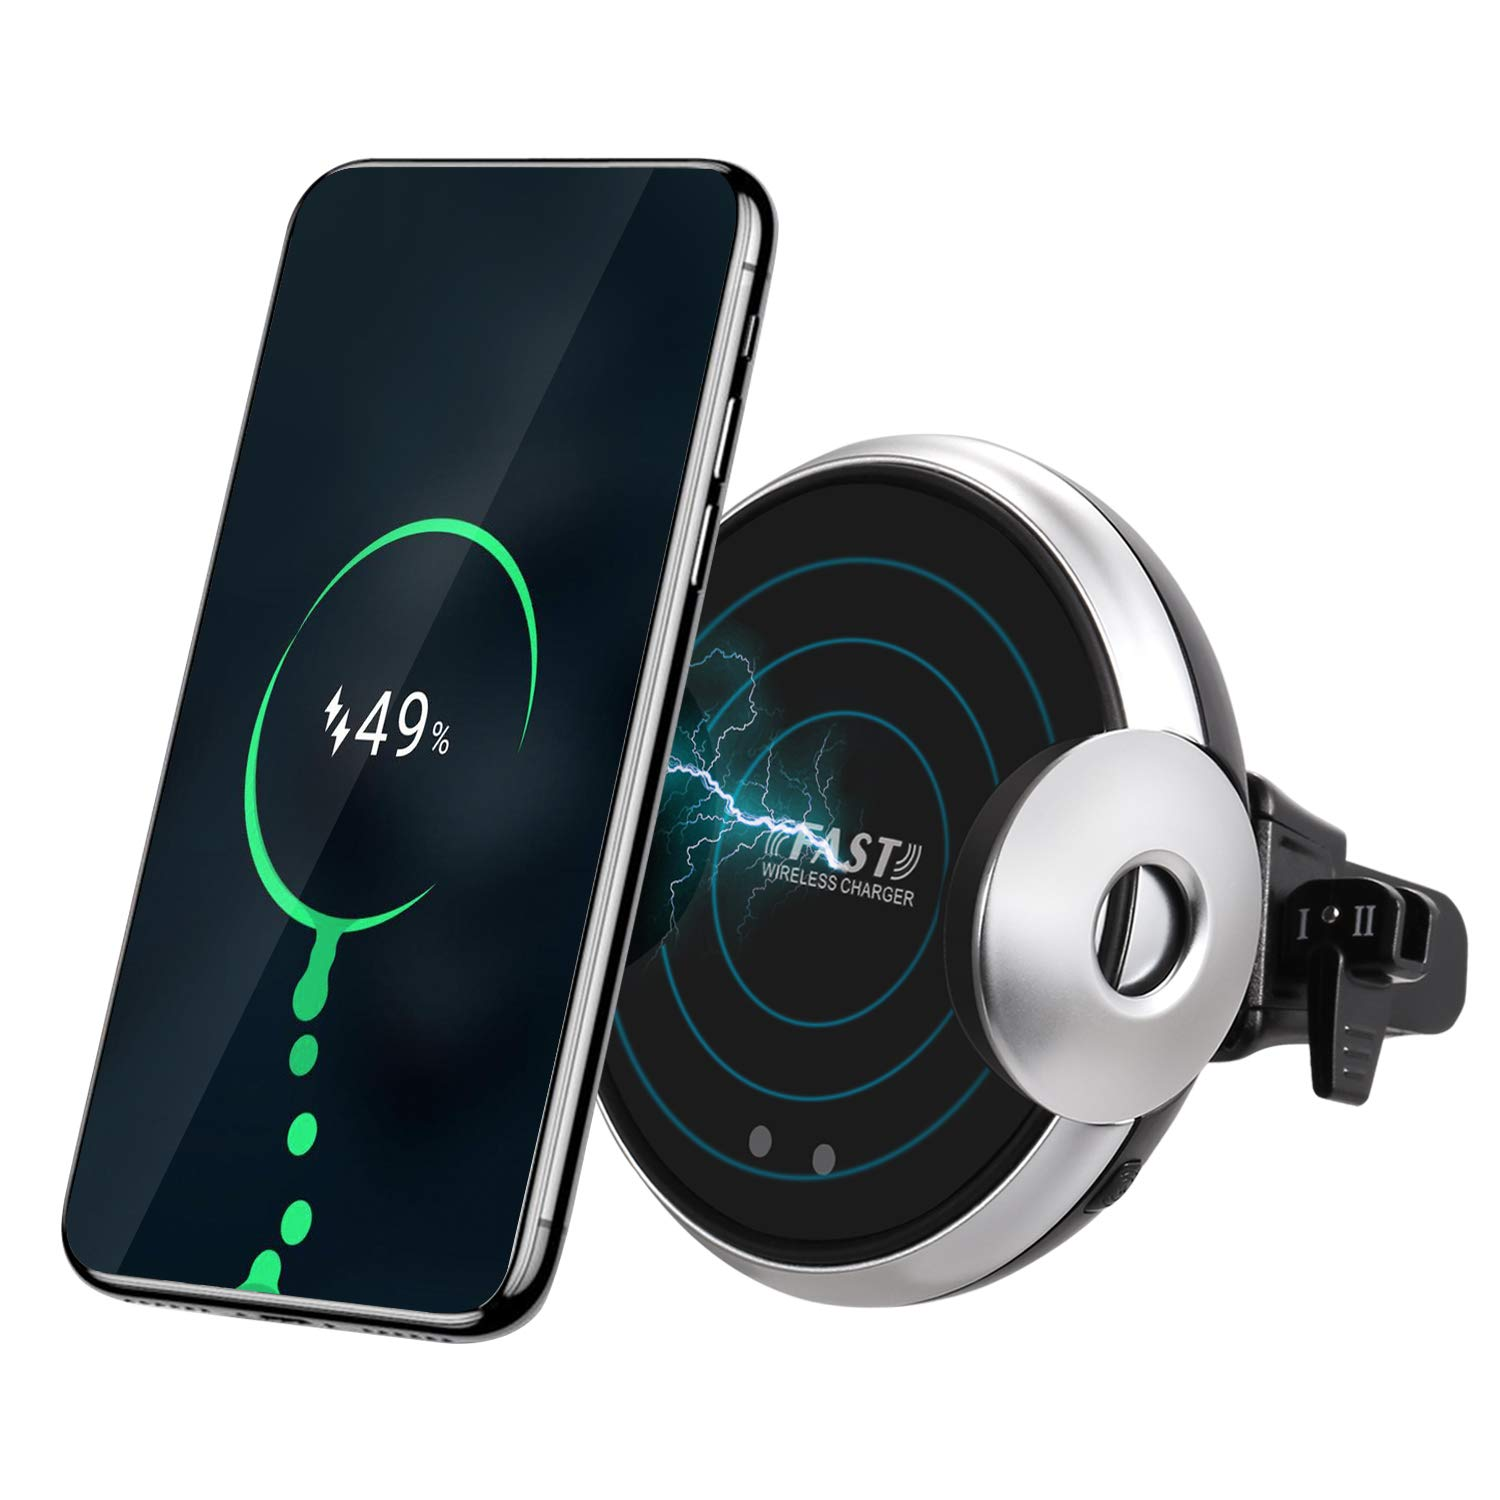 Wireless Car Charger Auto-Clamping Air Vent Phone Mount Holder 5W/10W/15W Fast Car Charging Cell Phone Mount Compatible for iPhone Xs/XS Max/XR/X/8 Plus, Galaxy Note 9/S9/S8, Qi Enabled Devices